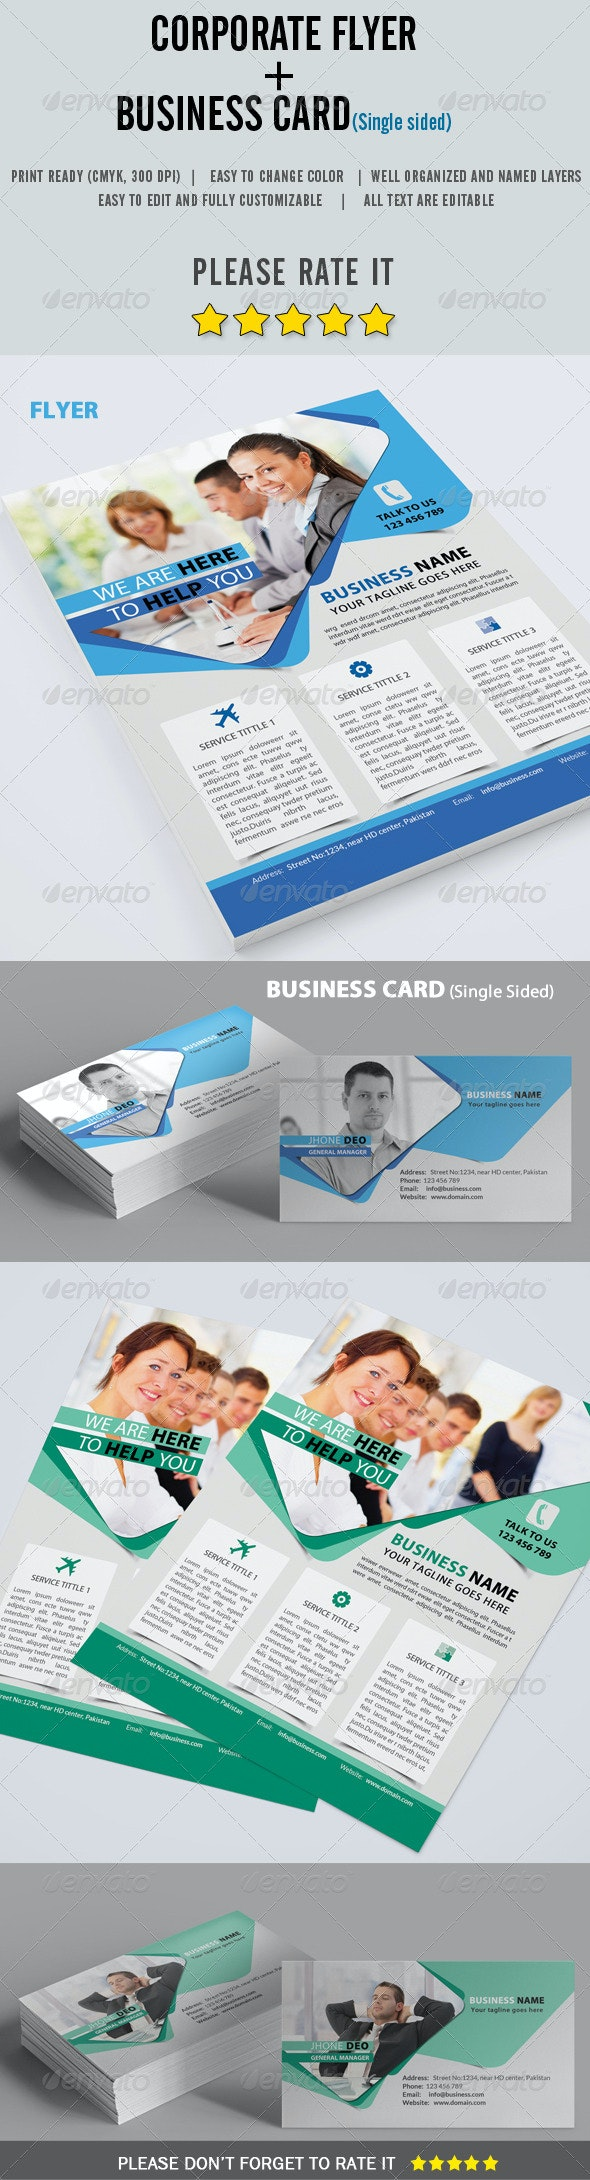 Corporate Flyer + Business Card - Corporate Flyers